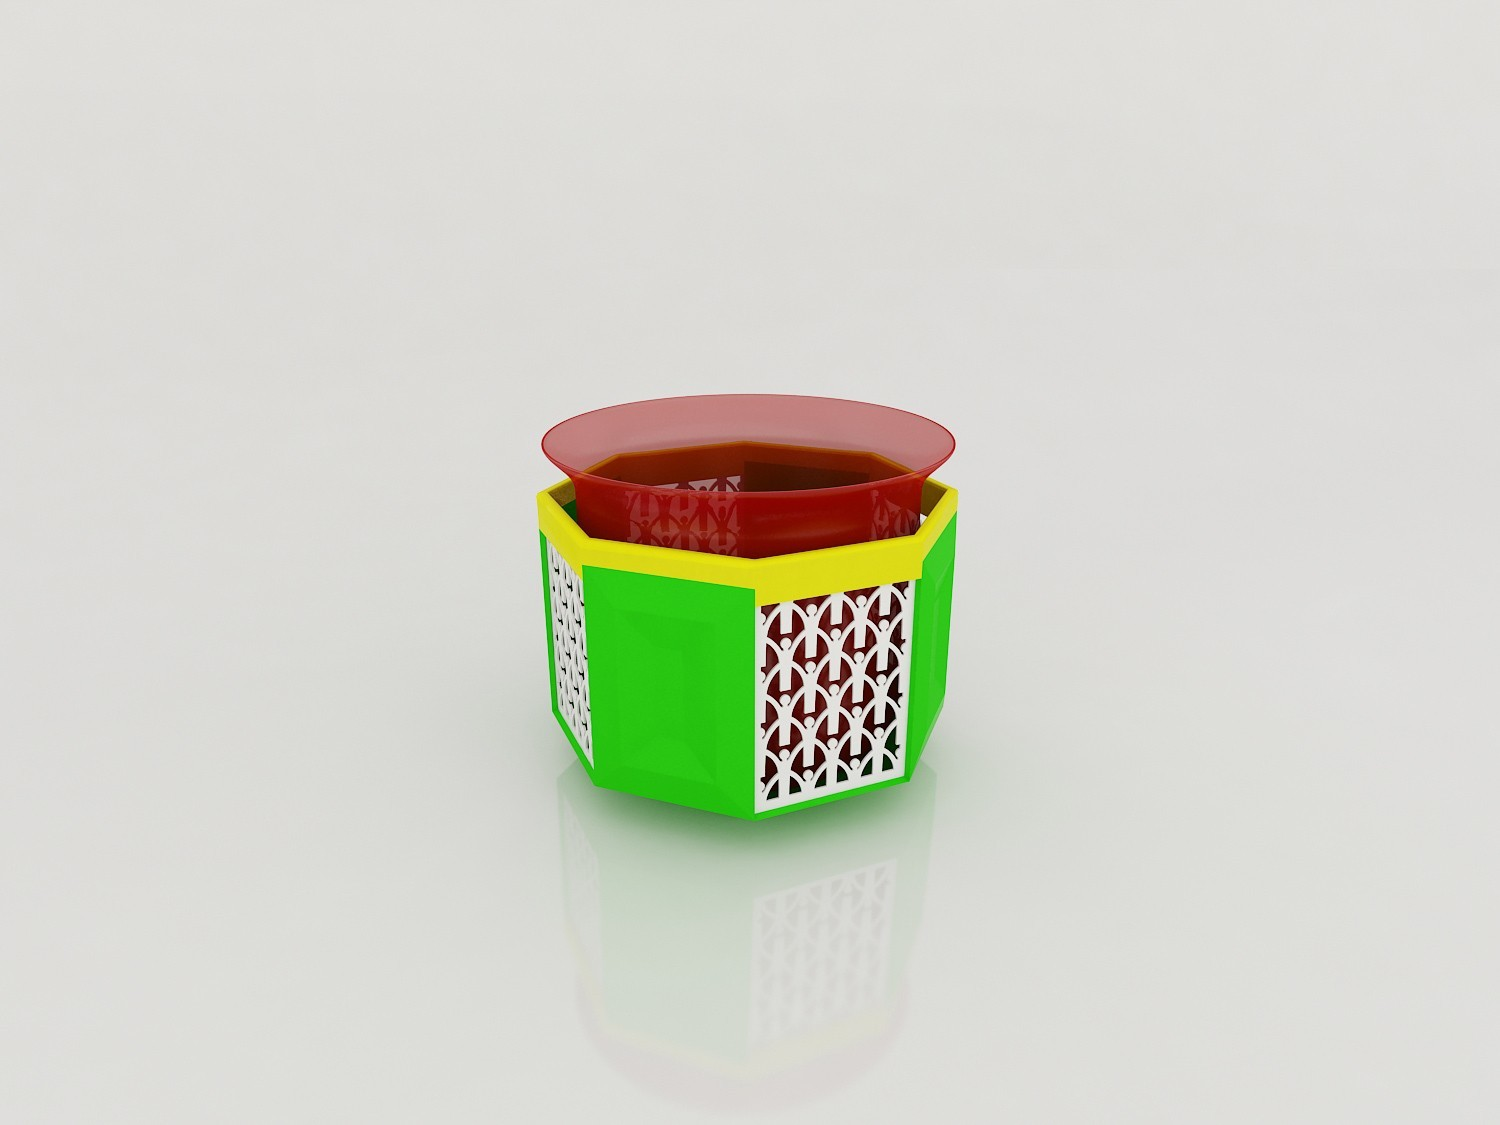 pot-it_open_spirit_v2&bac_glaçon_studio01.jpg Download STL file POT-IT, pot or pot cache • 3D print model, Tibe-Design